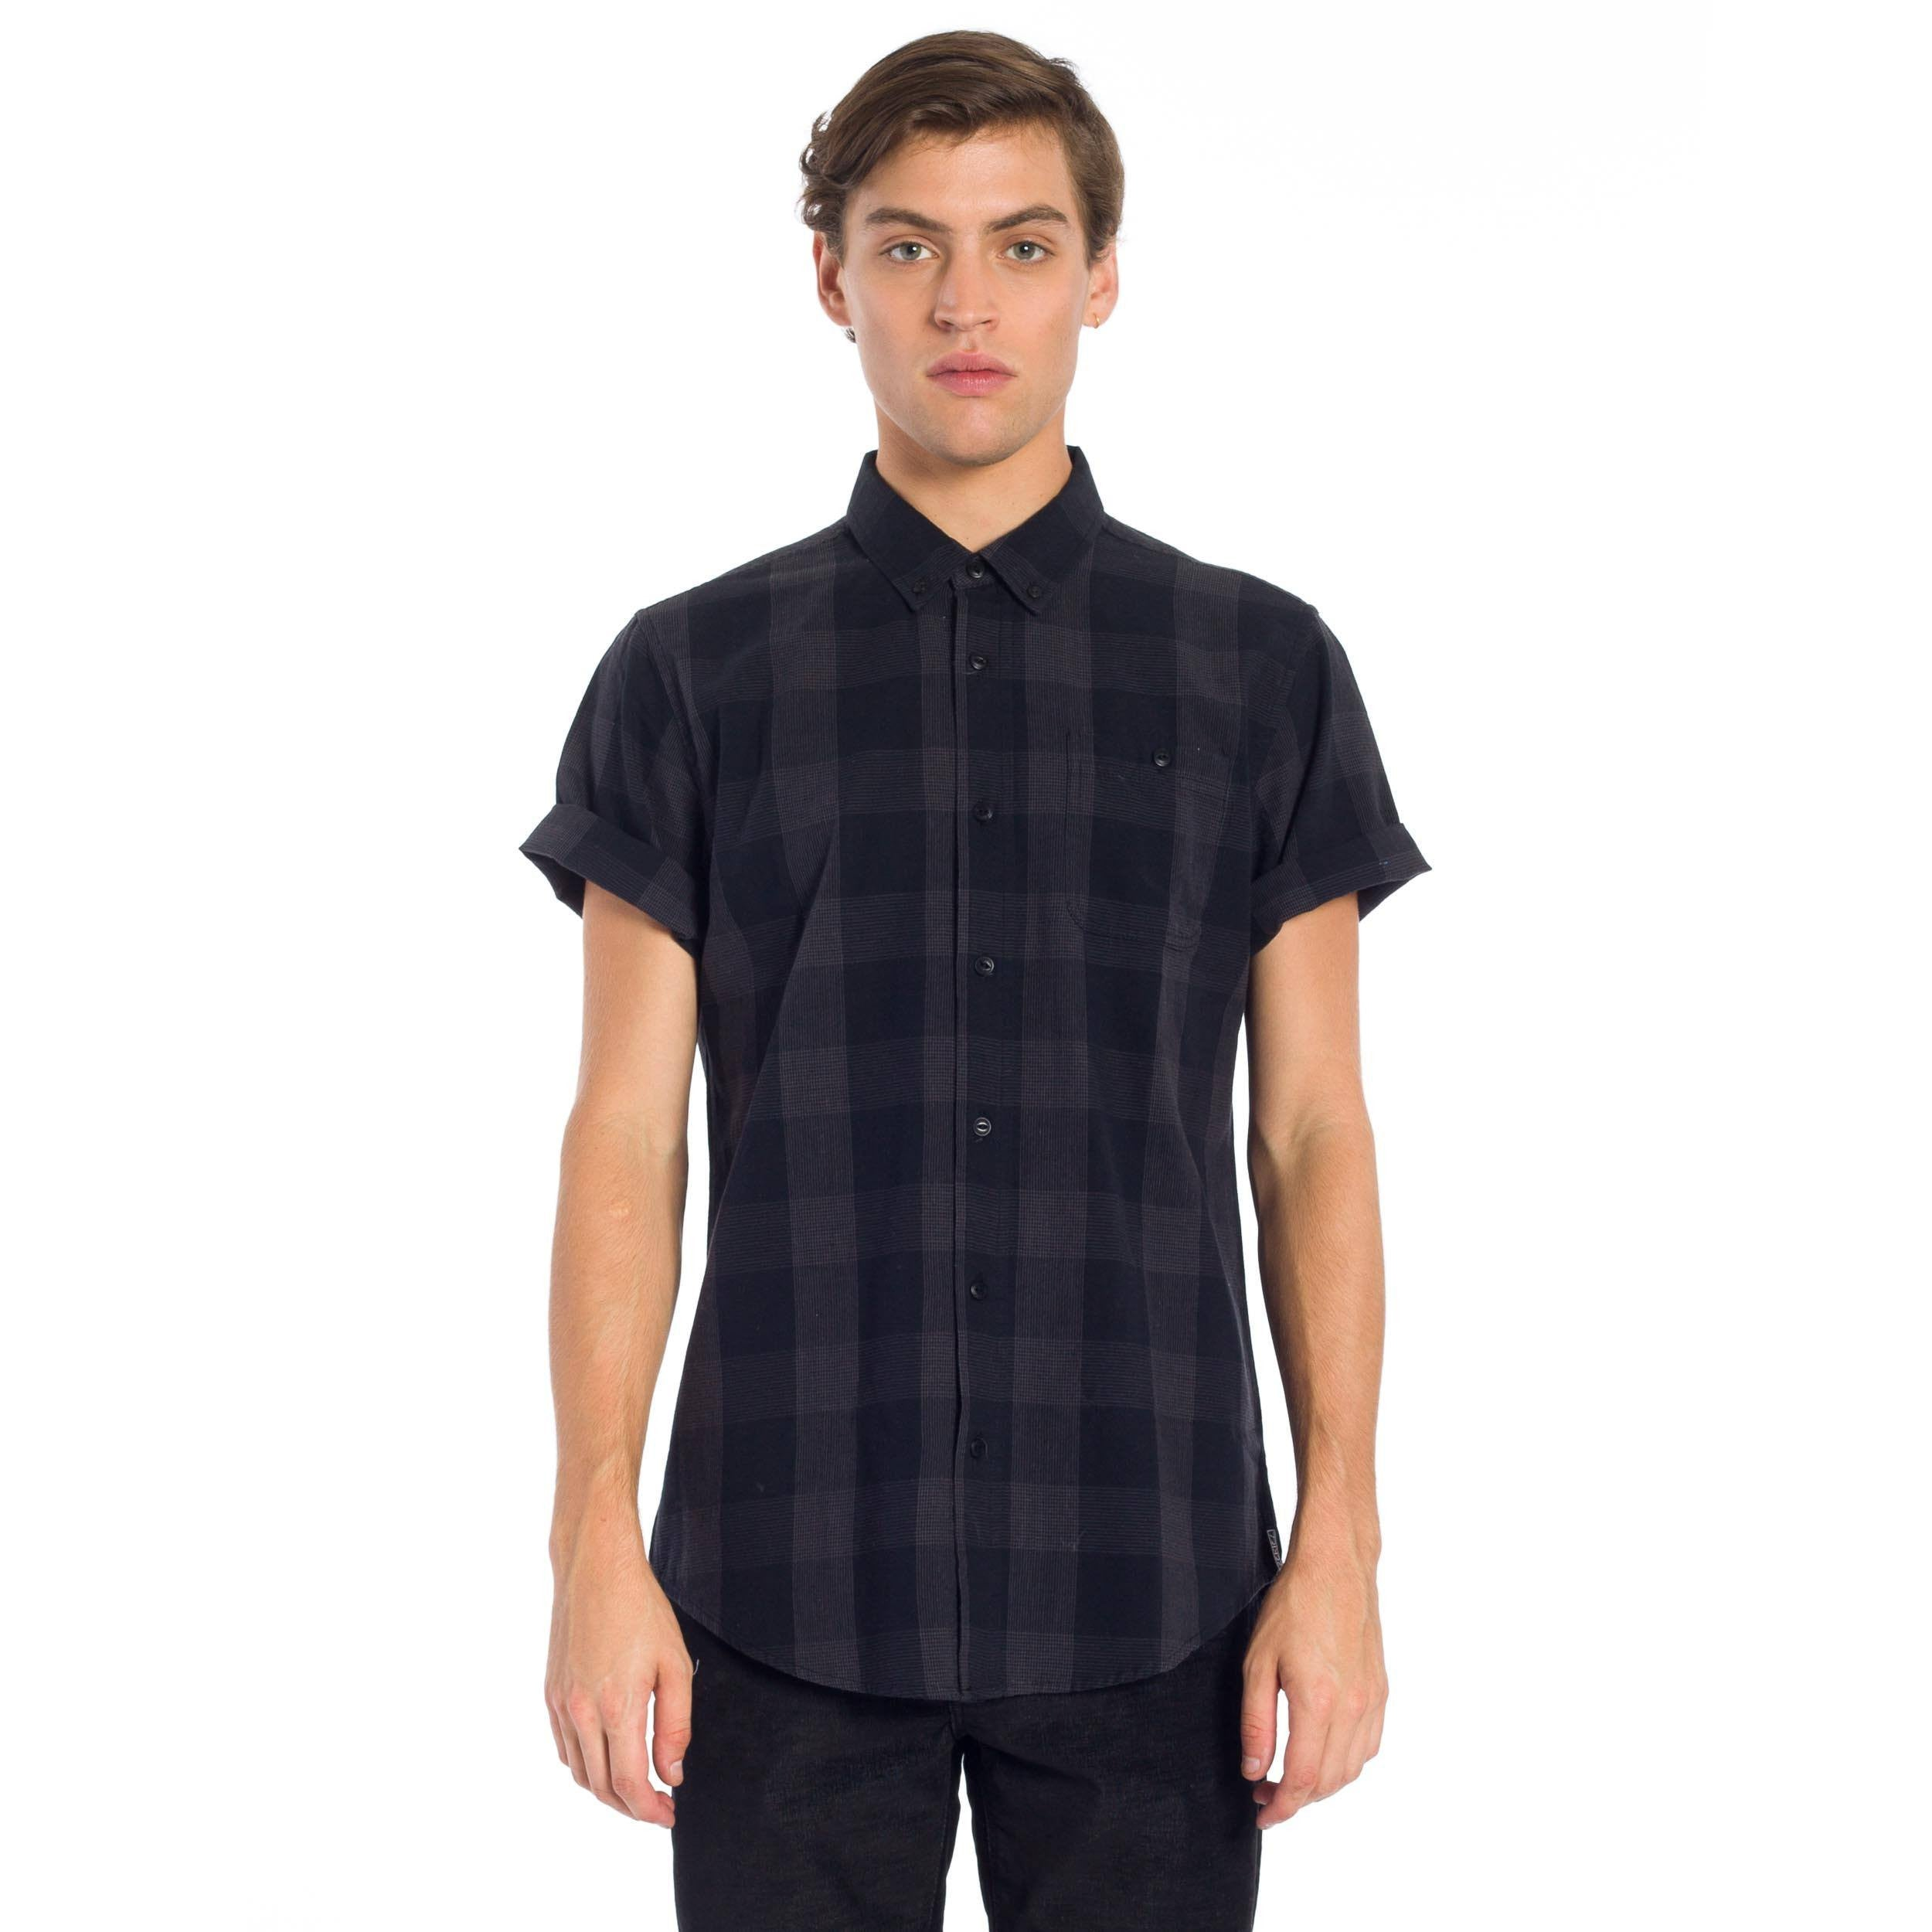 Ortiz Shirt - Black